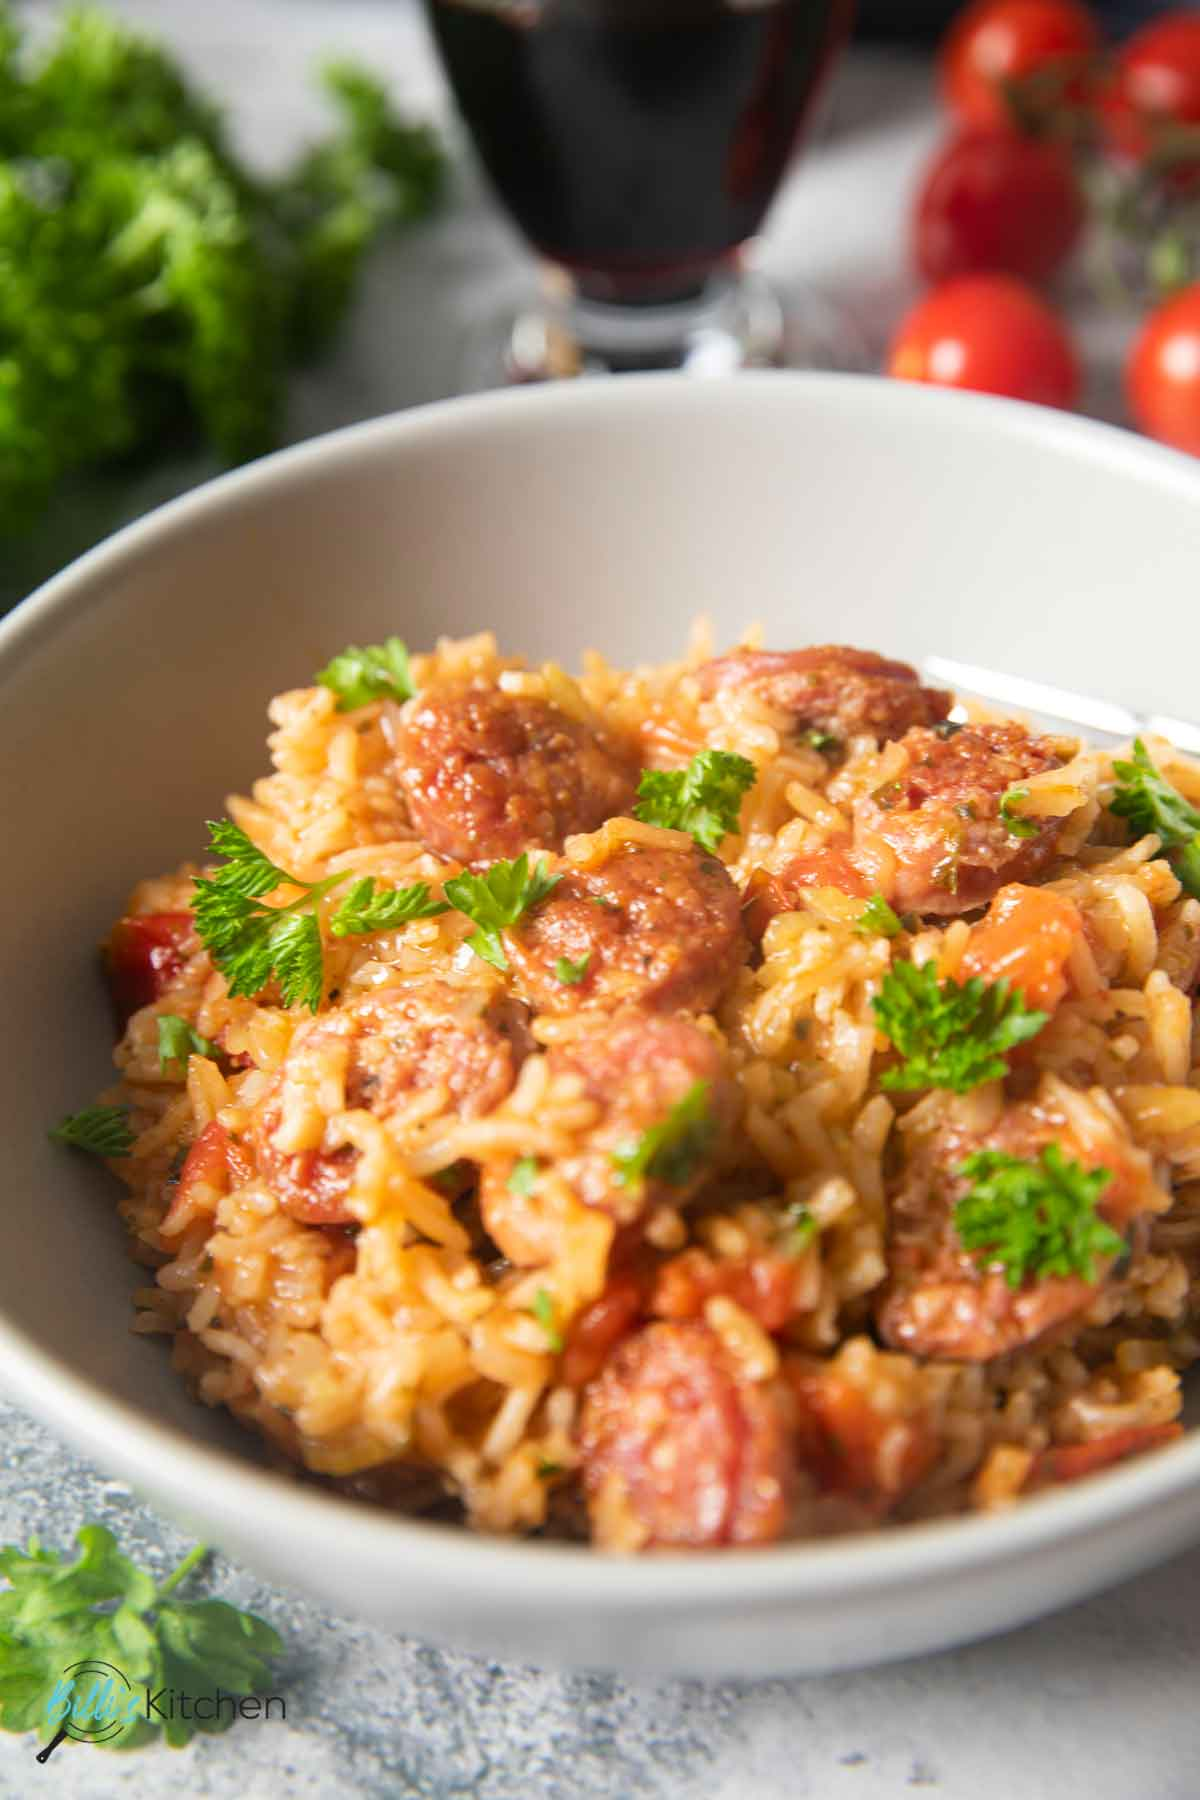 A closer shot of a plate of sausage and rice, with fresh cherry tomatoes and parsely on the background.